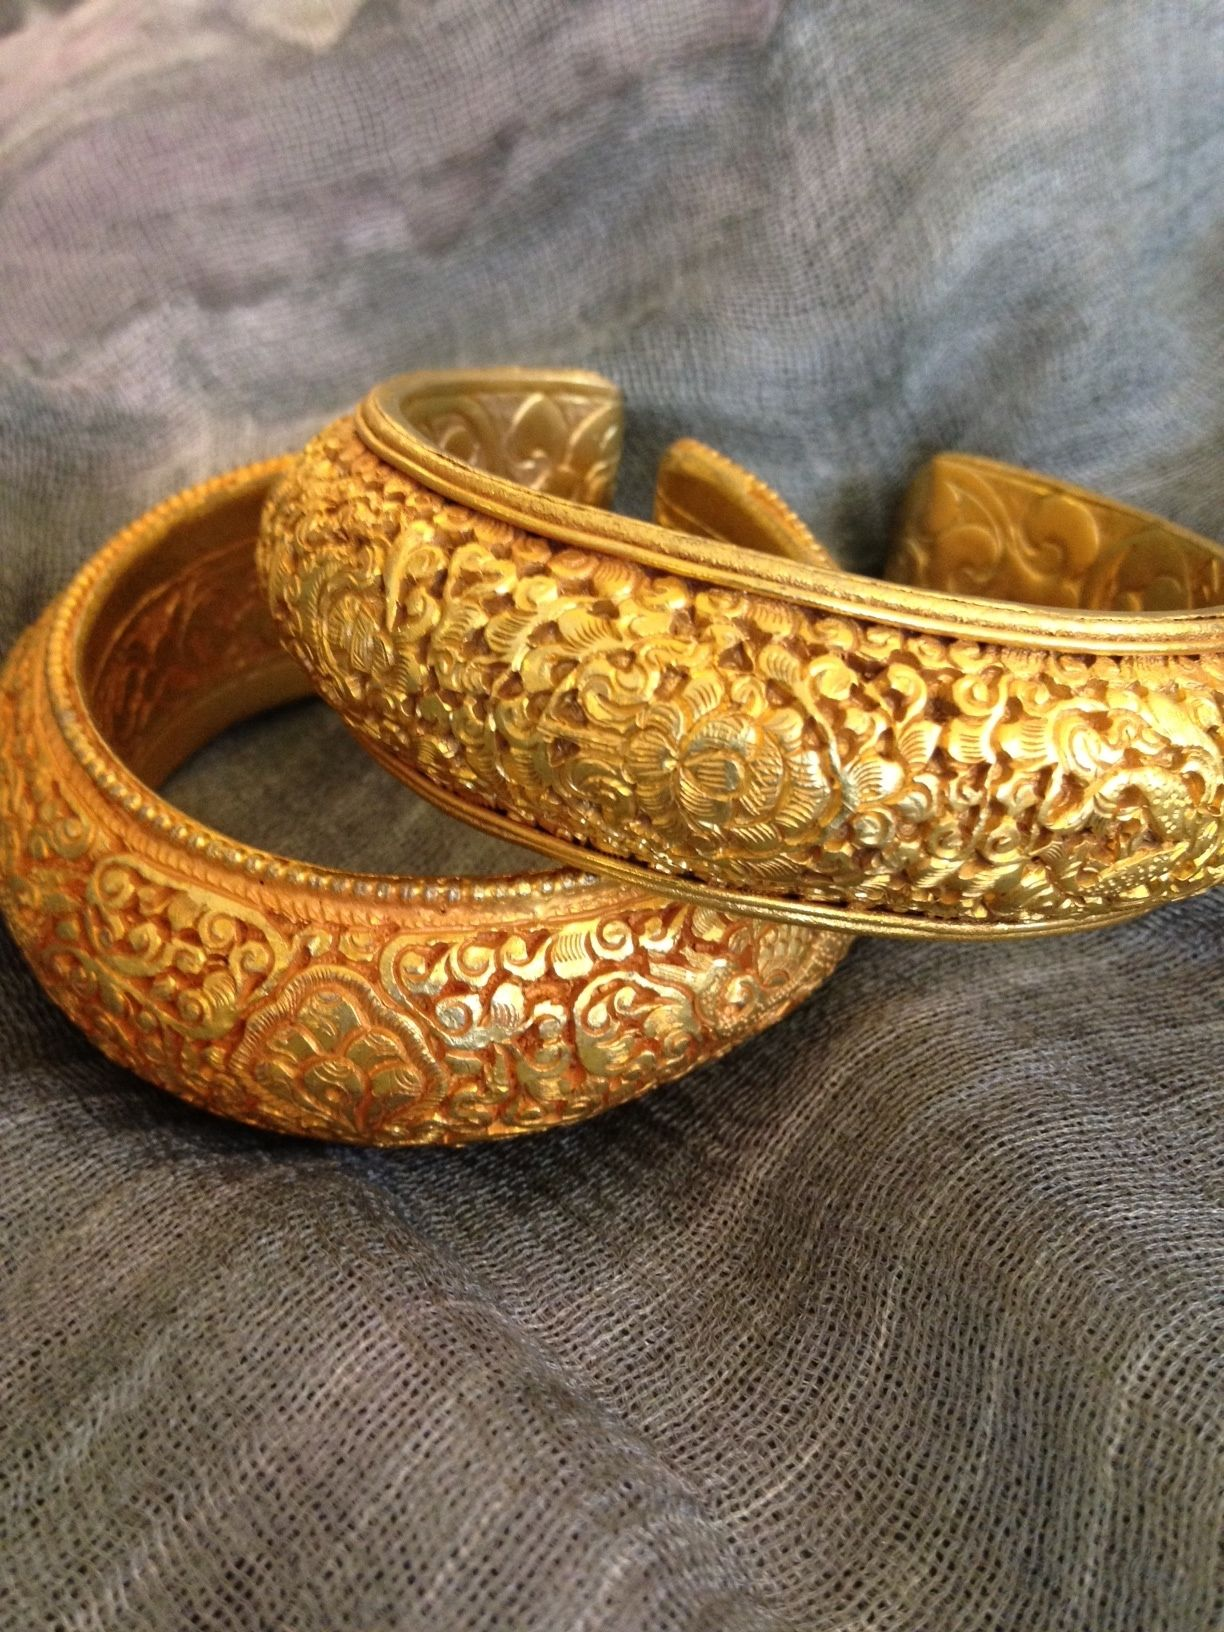 wedding gold kundan store season original india bangles s bridal bracelets women and online small buy sale bronze